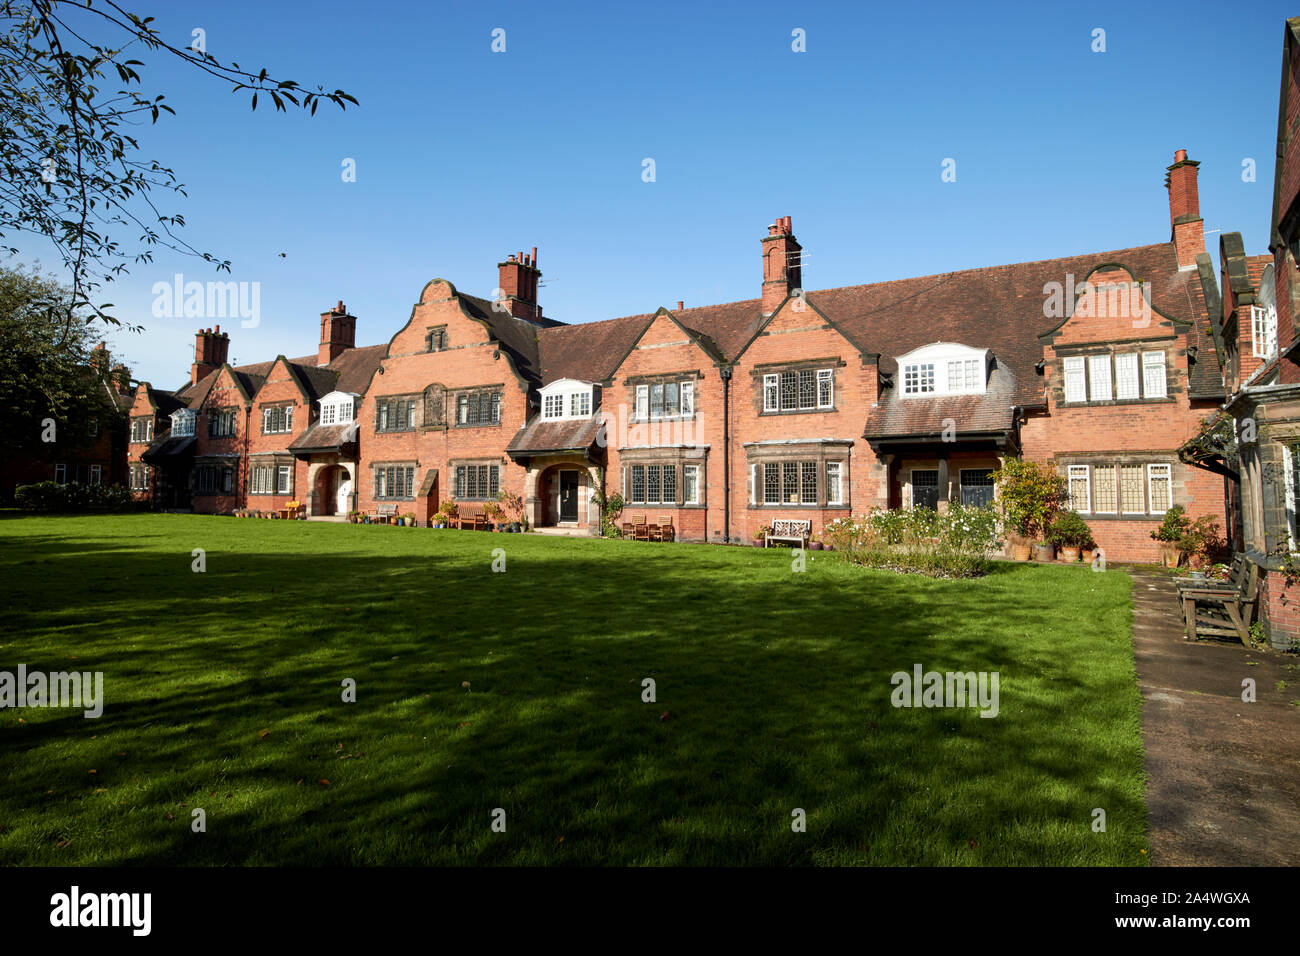 houses on bath street around a lawn by j. j. talbot Port Sunlight England UK Stock Photo